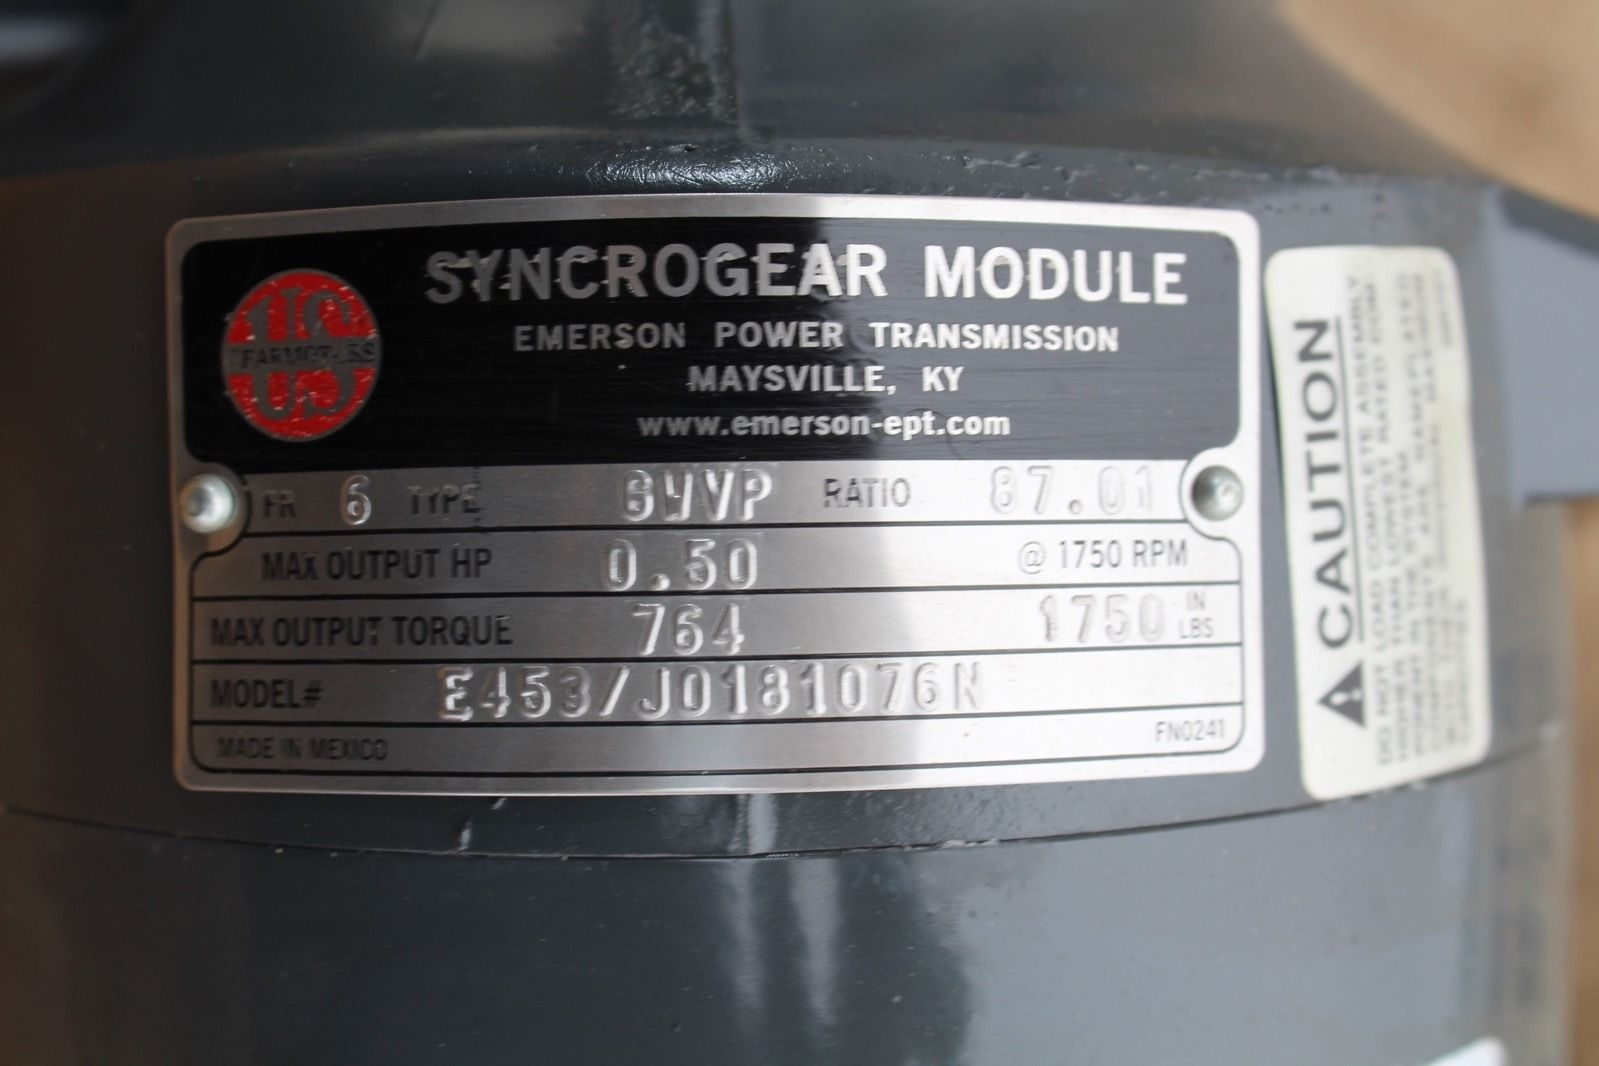 Browning E181 Motor w/Syncrogear Module E453/J0181076N Type: 6WVP *NEW* (connex) 2